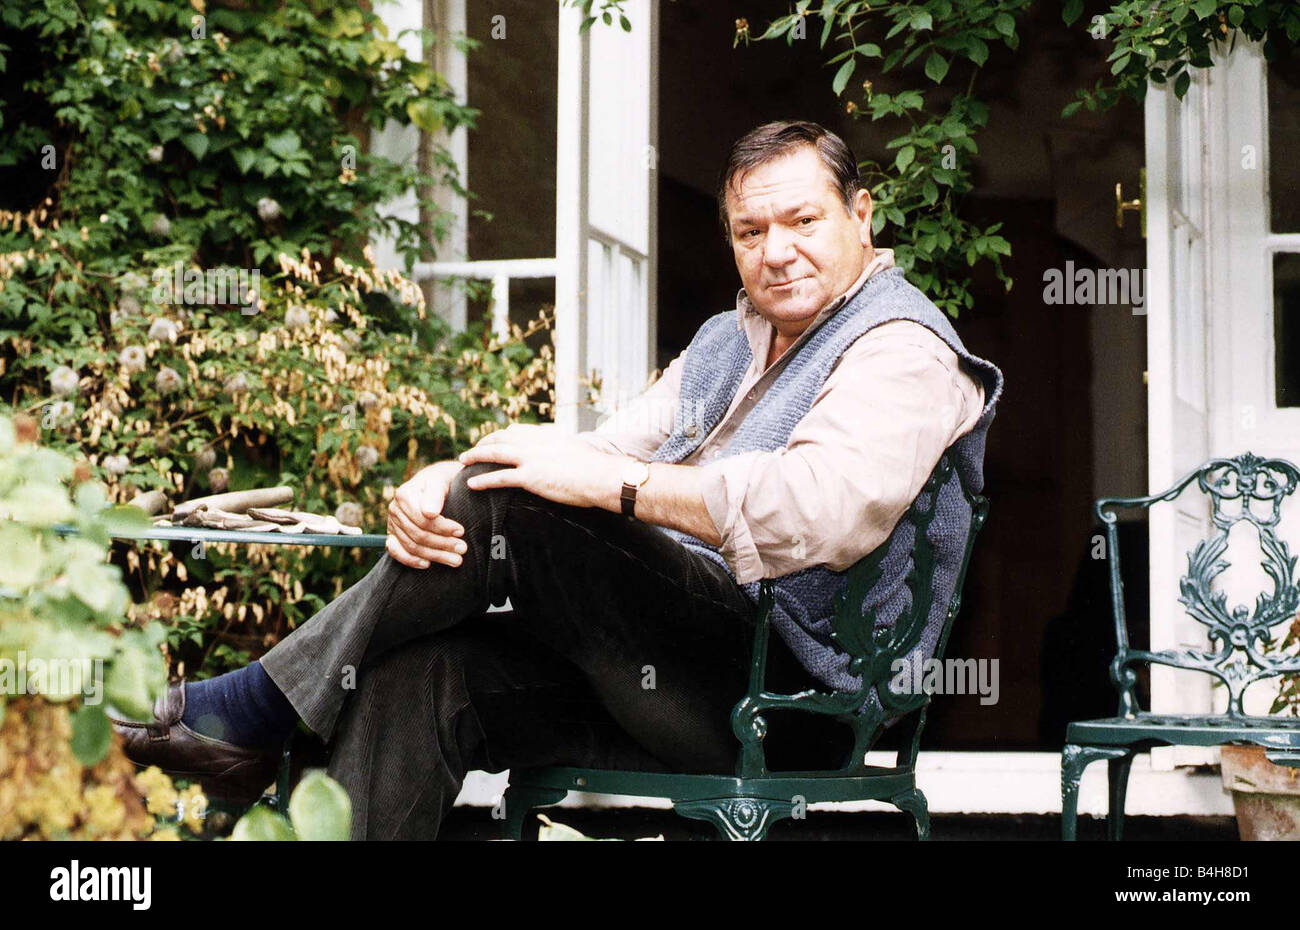 dr evil chair baby bamboo singapore michael elphick stock photos and